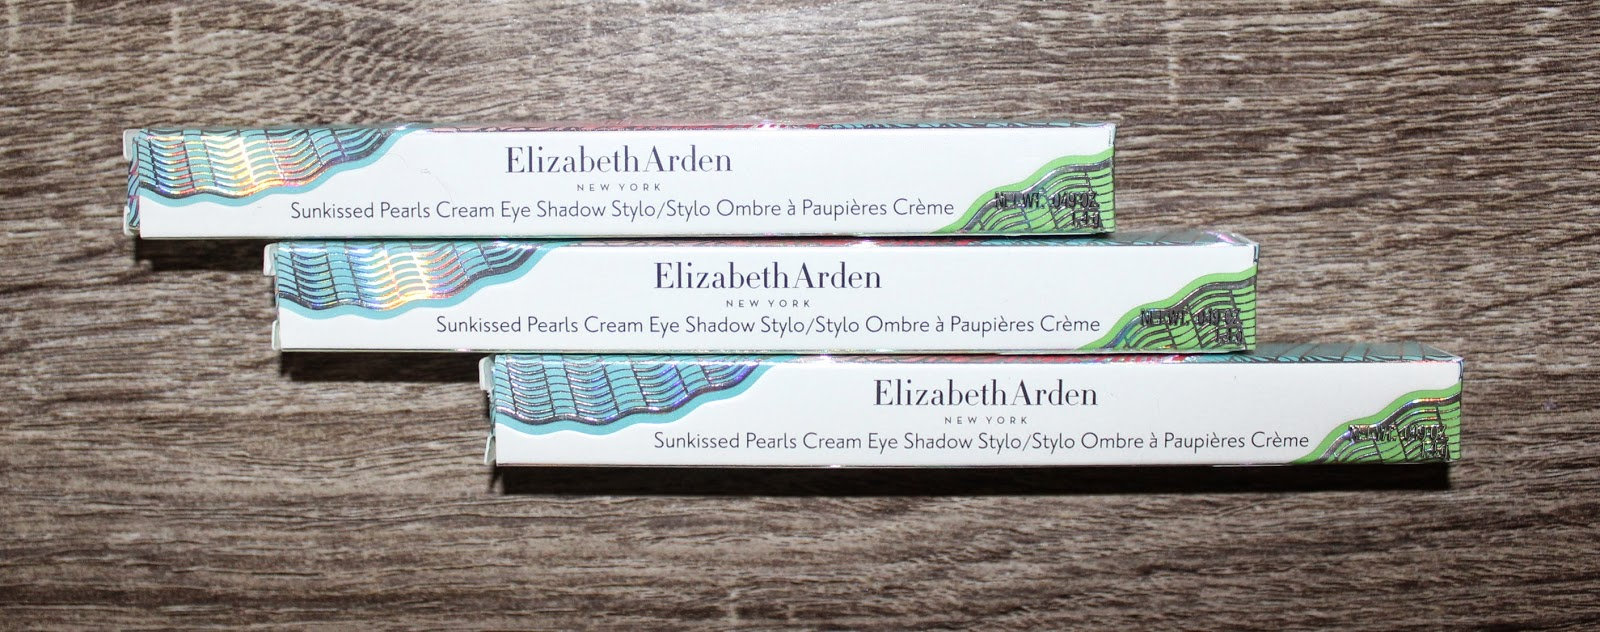 Elizabeth Arden Limited Edition Sunkissed Pearls Cream Eye Shadow Stylos